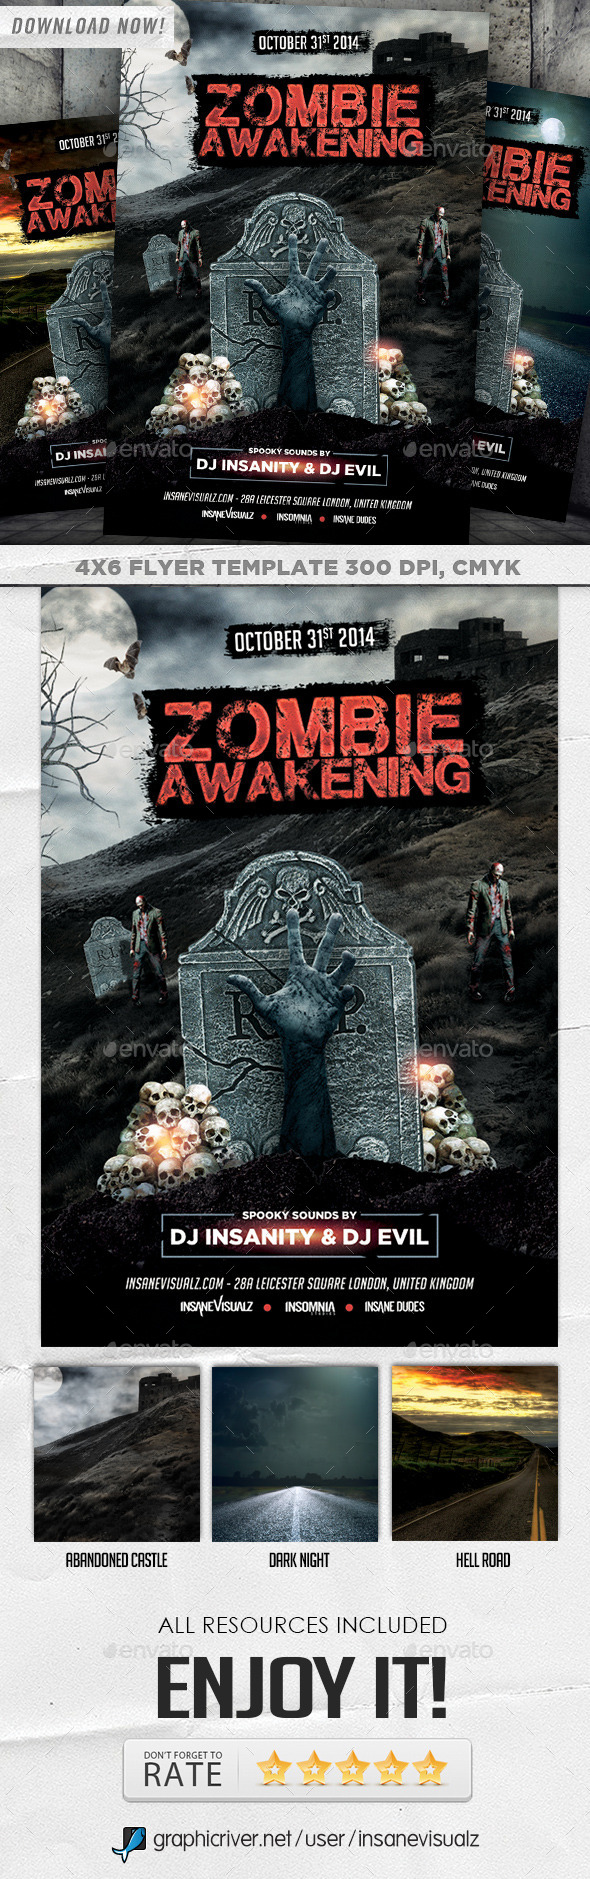 GraphicRiver Zombie Awakening Halloween Flyer 8879796